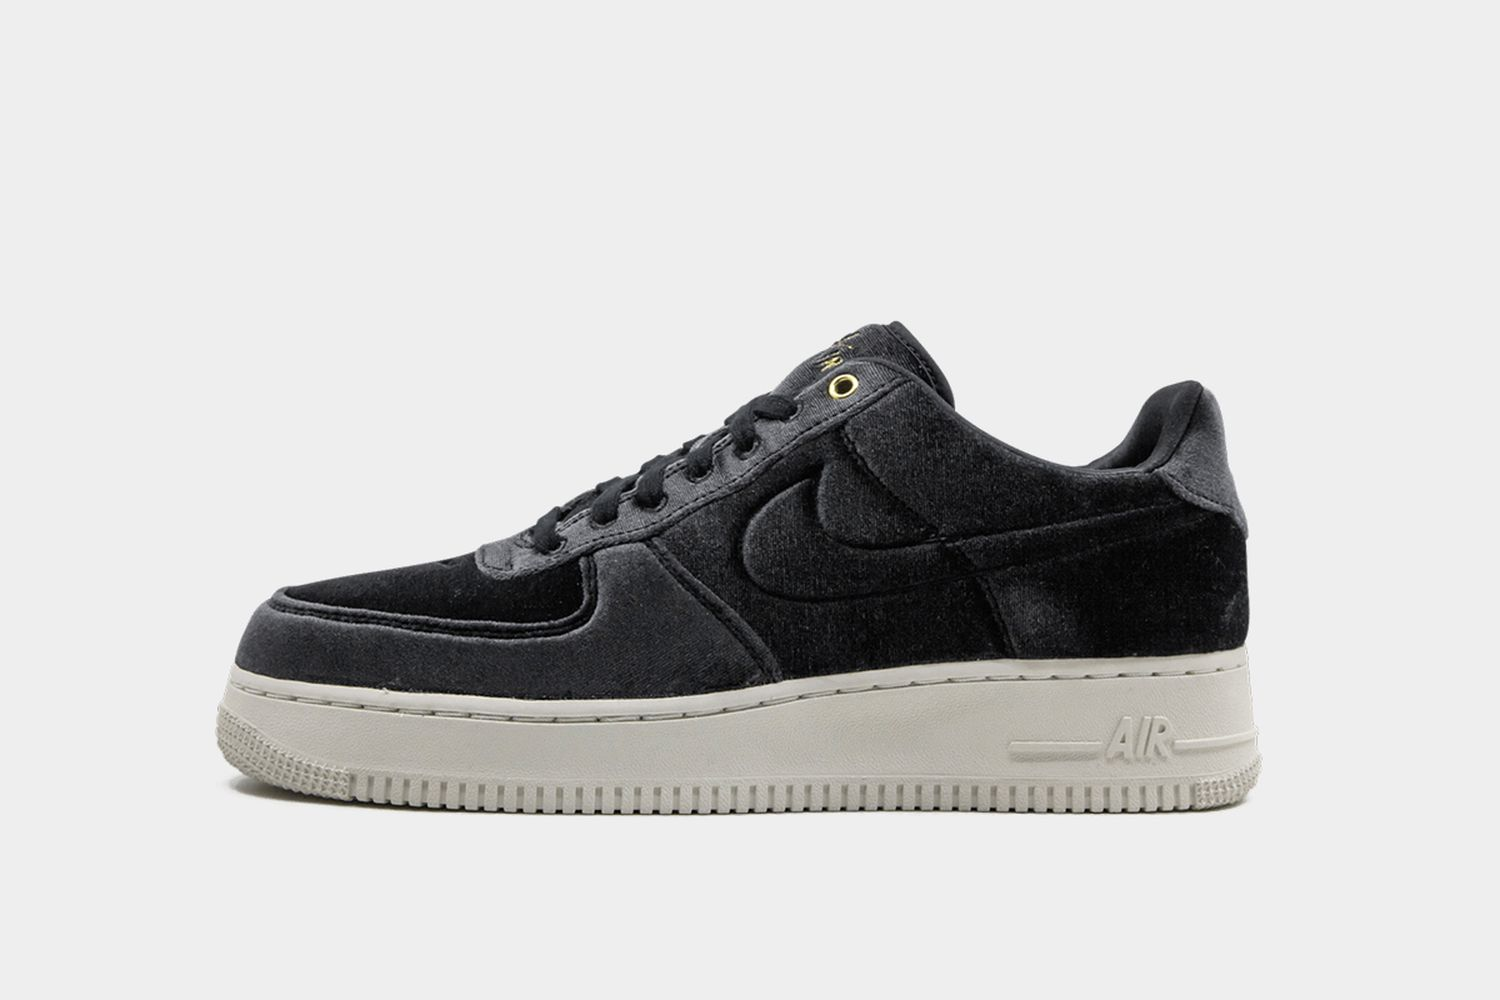 Air Force 1 Low 07 PRM 3